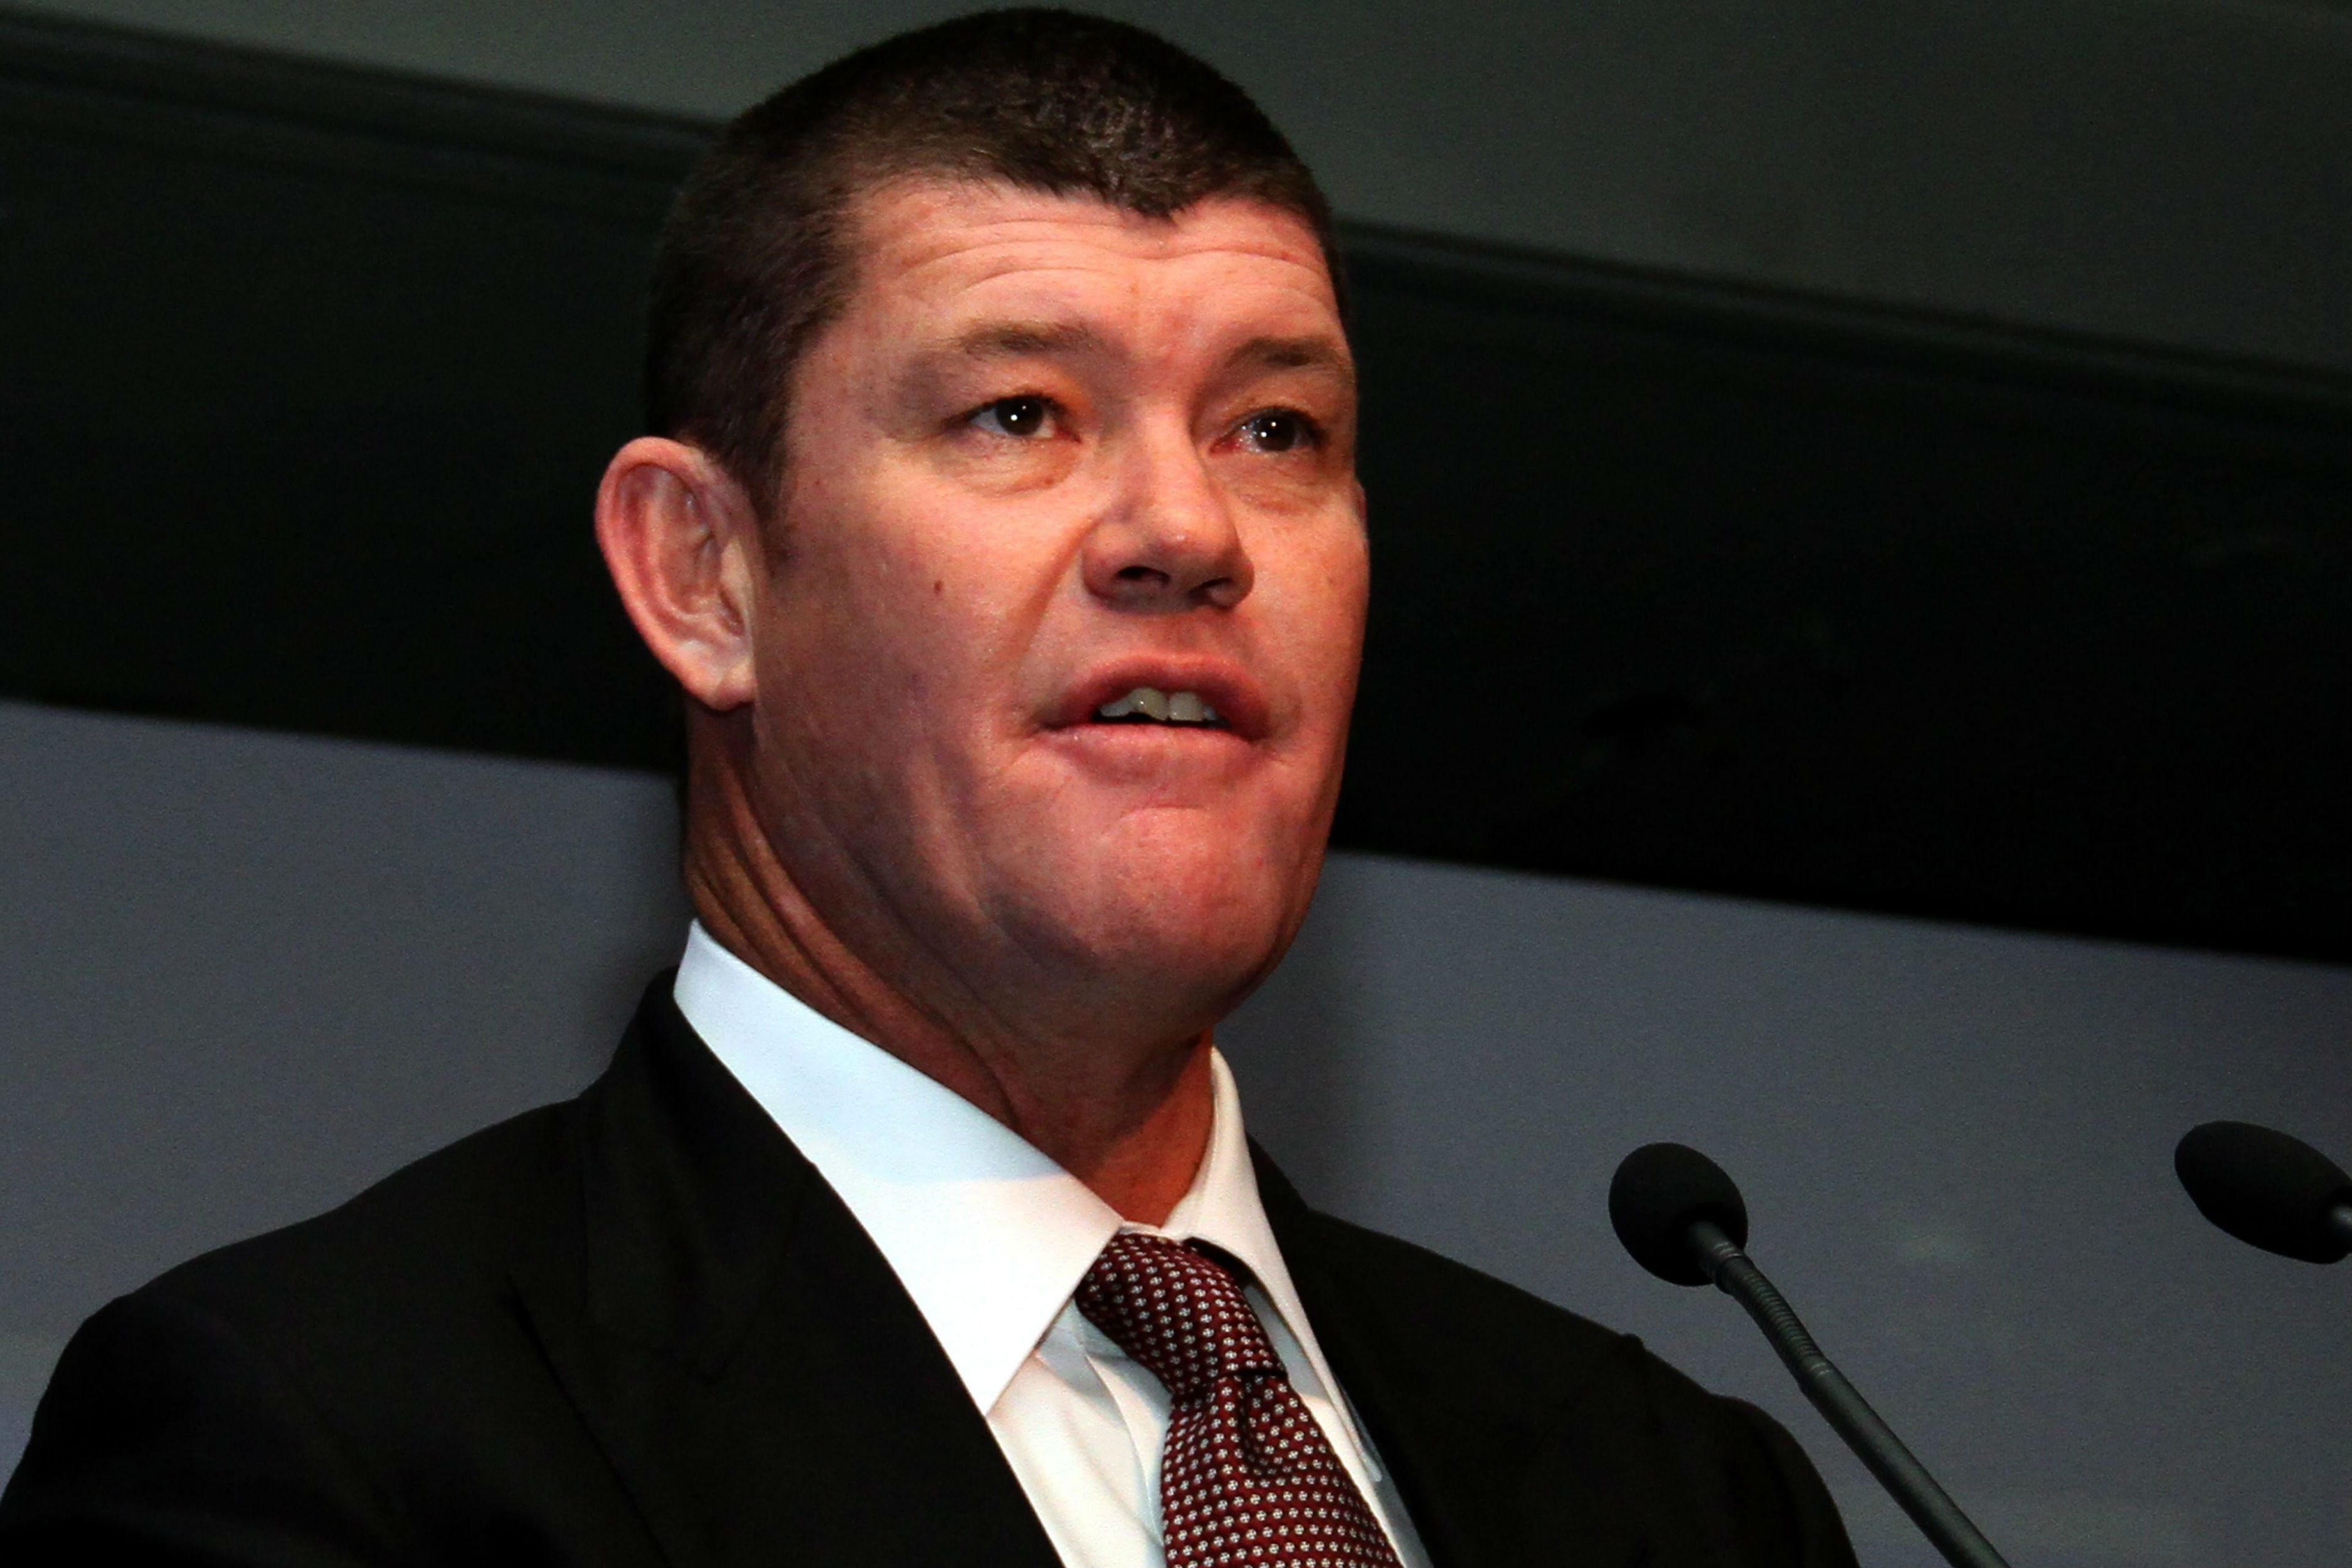 Australian casino mogul James Packer